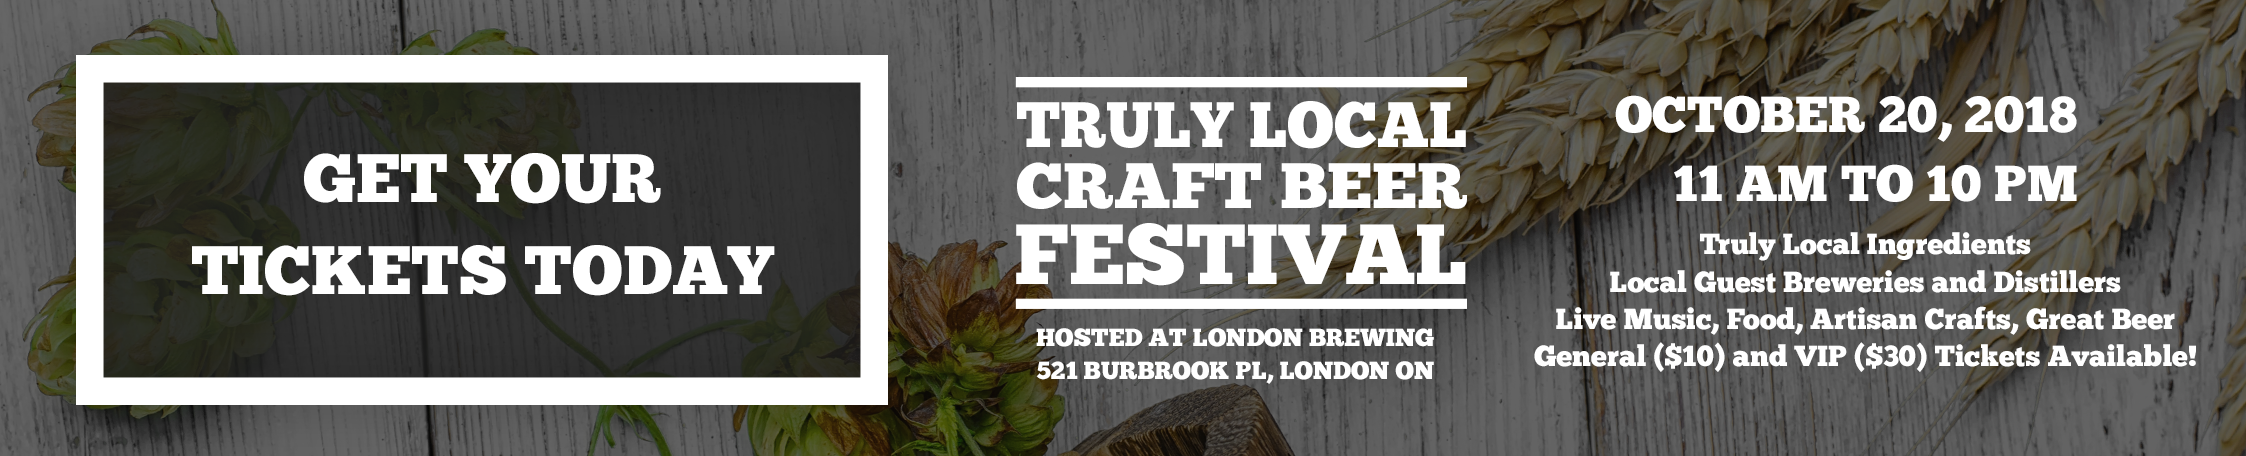 truly-local-craft-beer-festival-banner